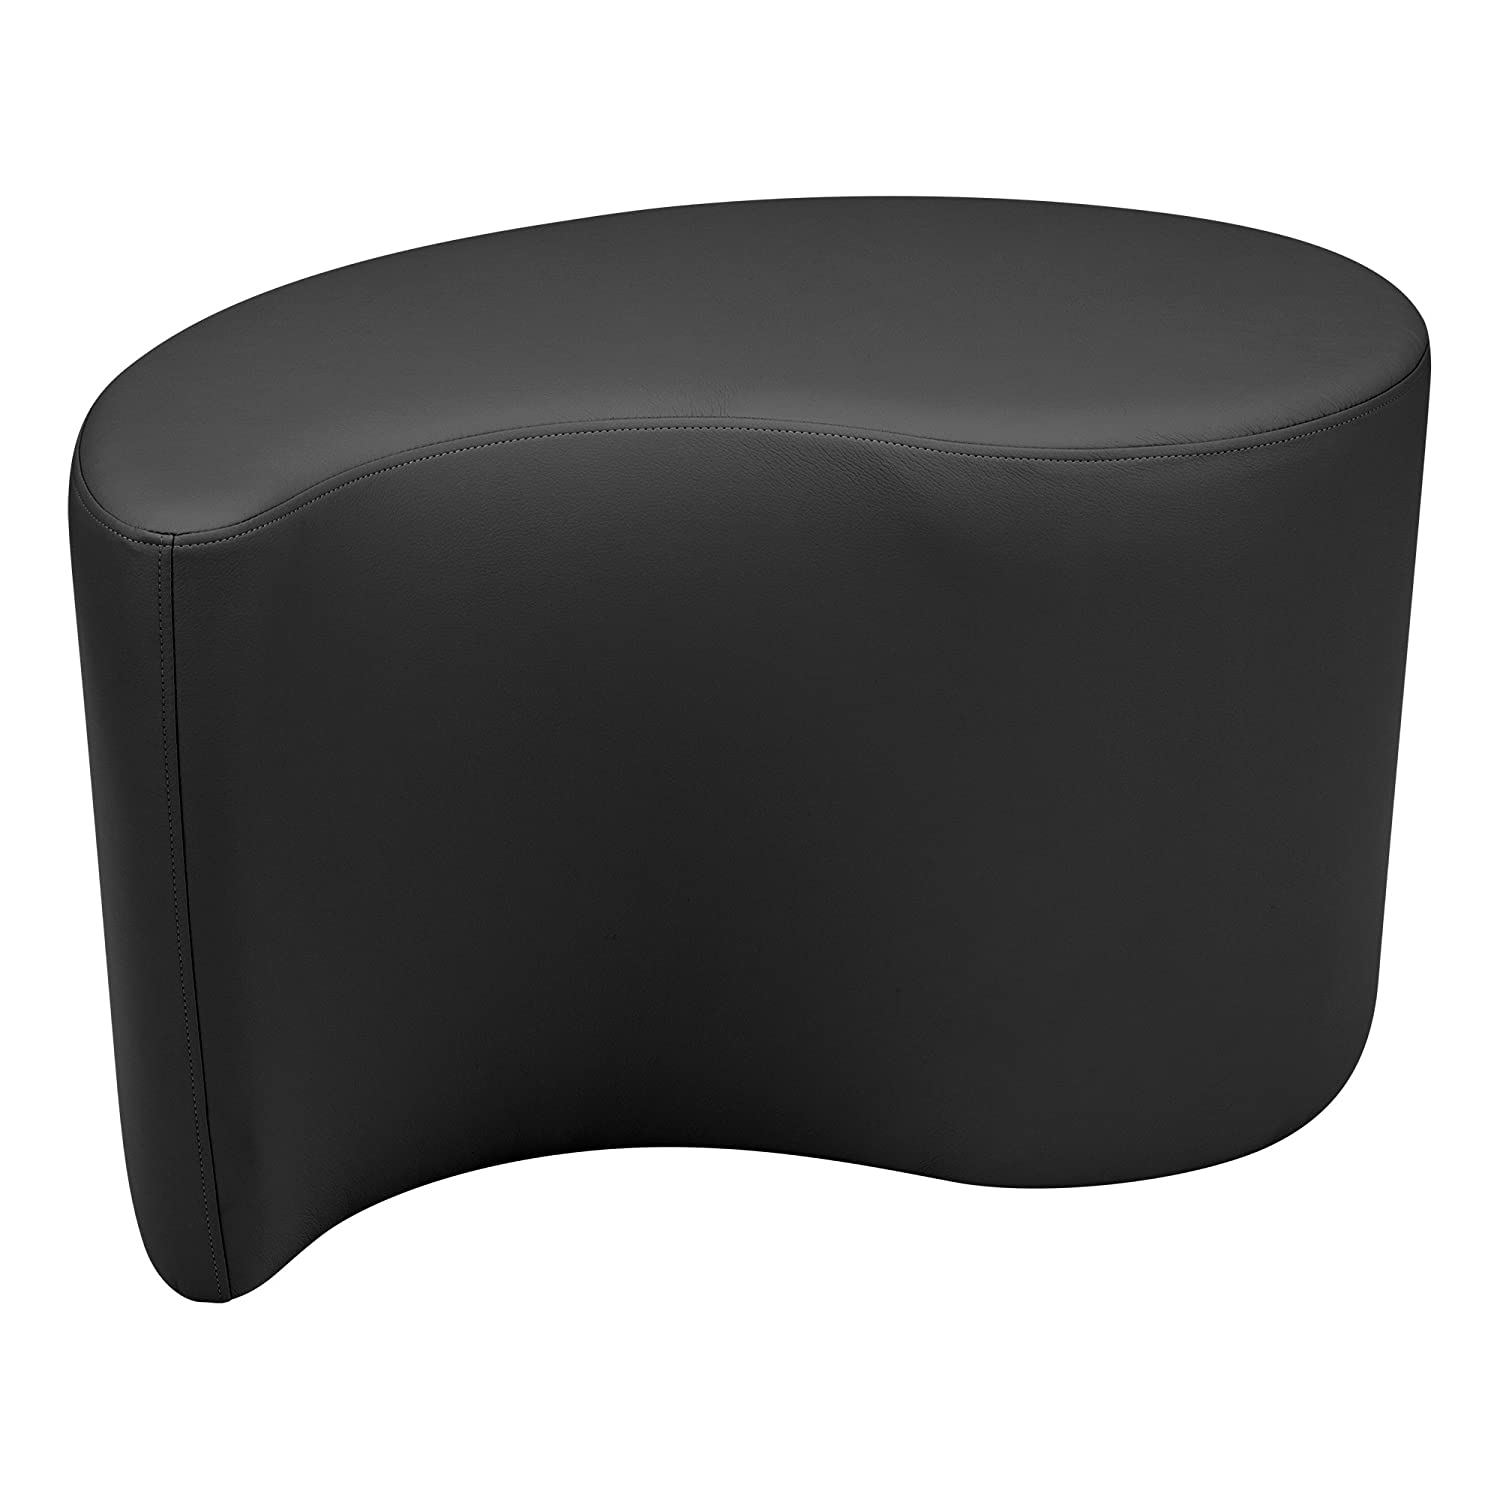 Learniture Shapes Series II Vinyl Soft Seating Stool Teardrop 18 H Black LNT 1002BK A